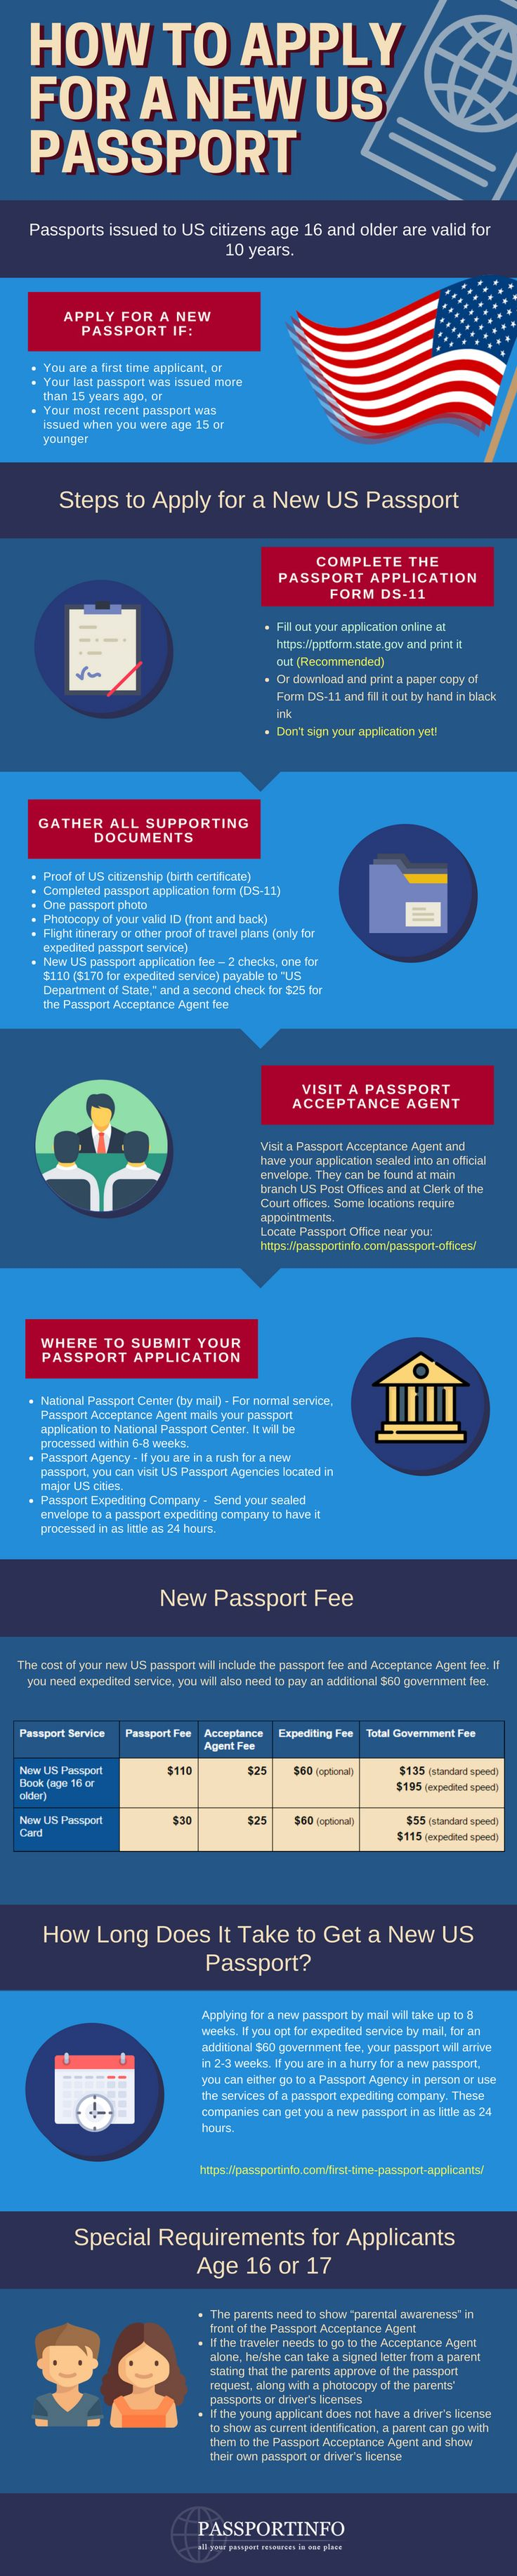 How to apply for a new US Passport? Infographic Eligibility criteria, list of required documents, and passport offices near you..